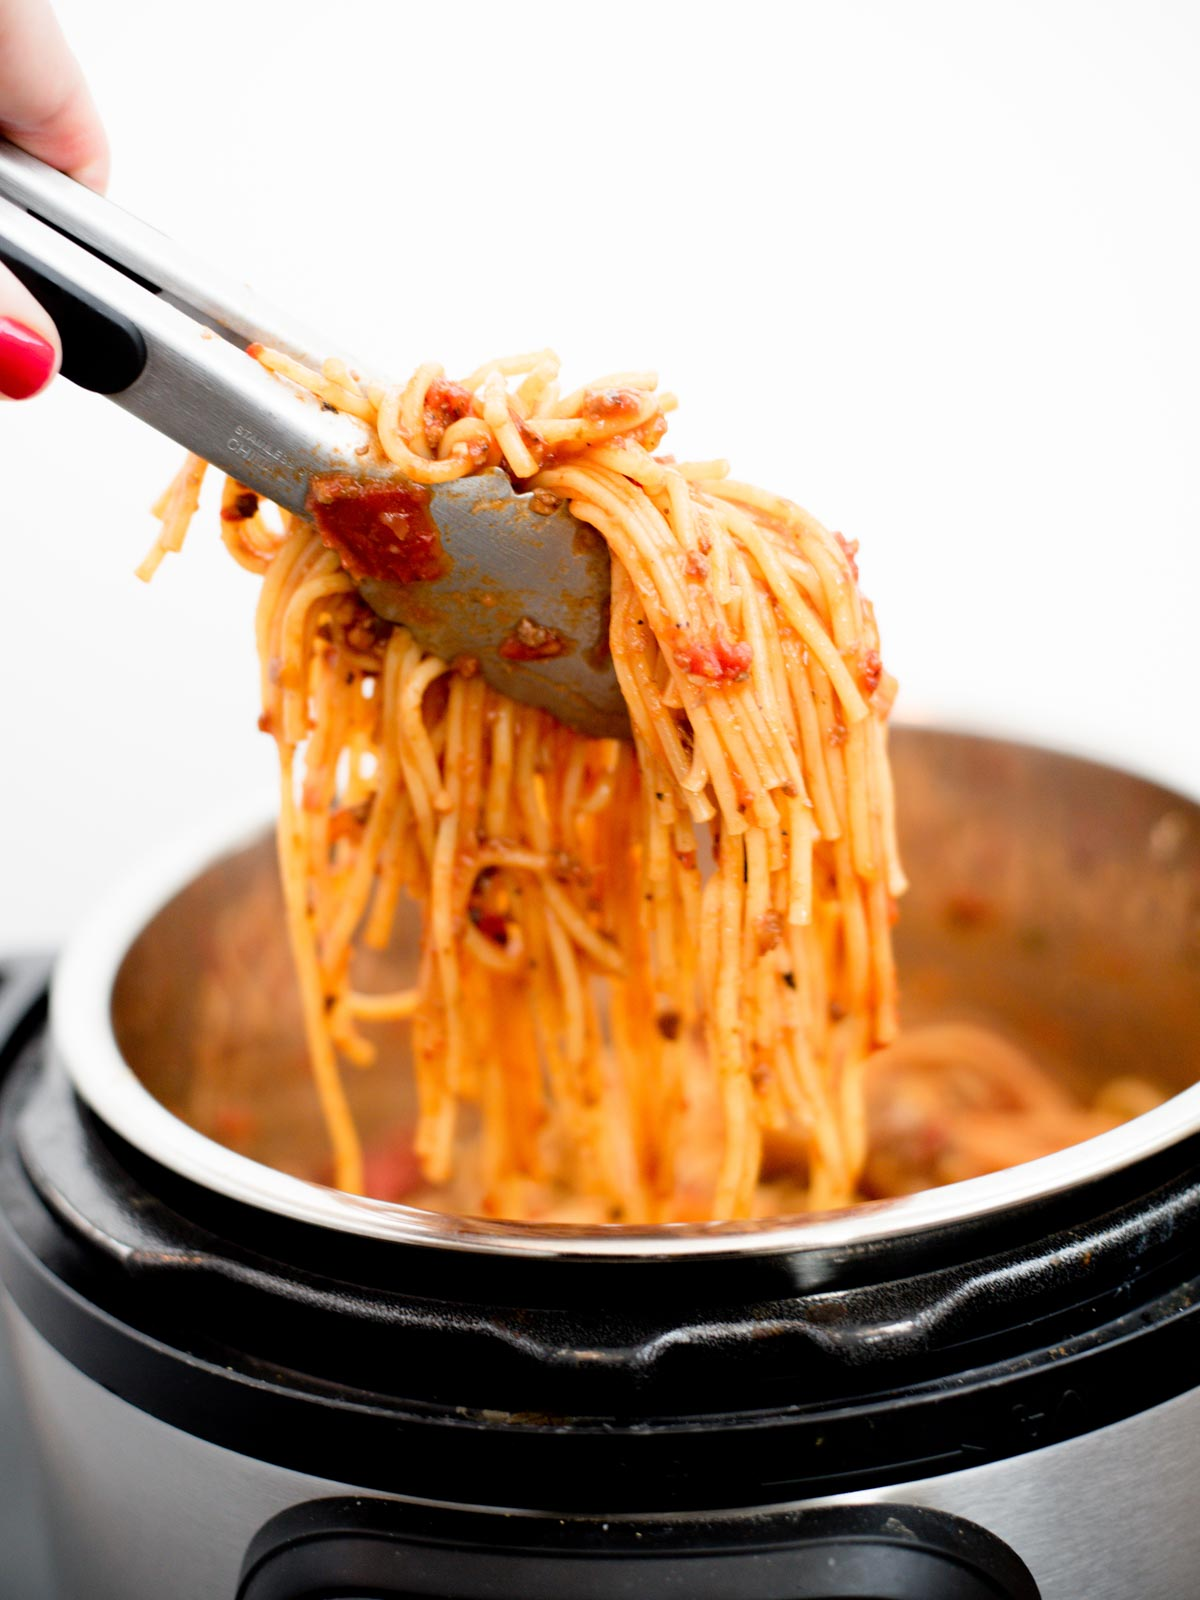 spaghetti being pulled from instant pot with tongs